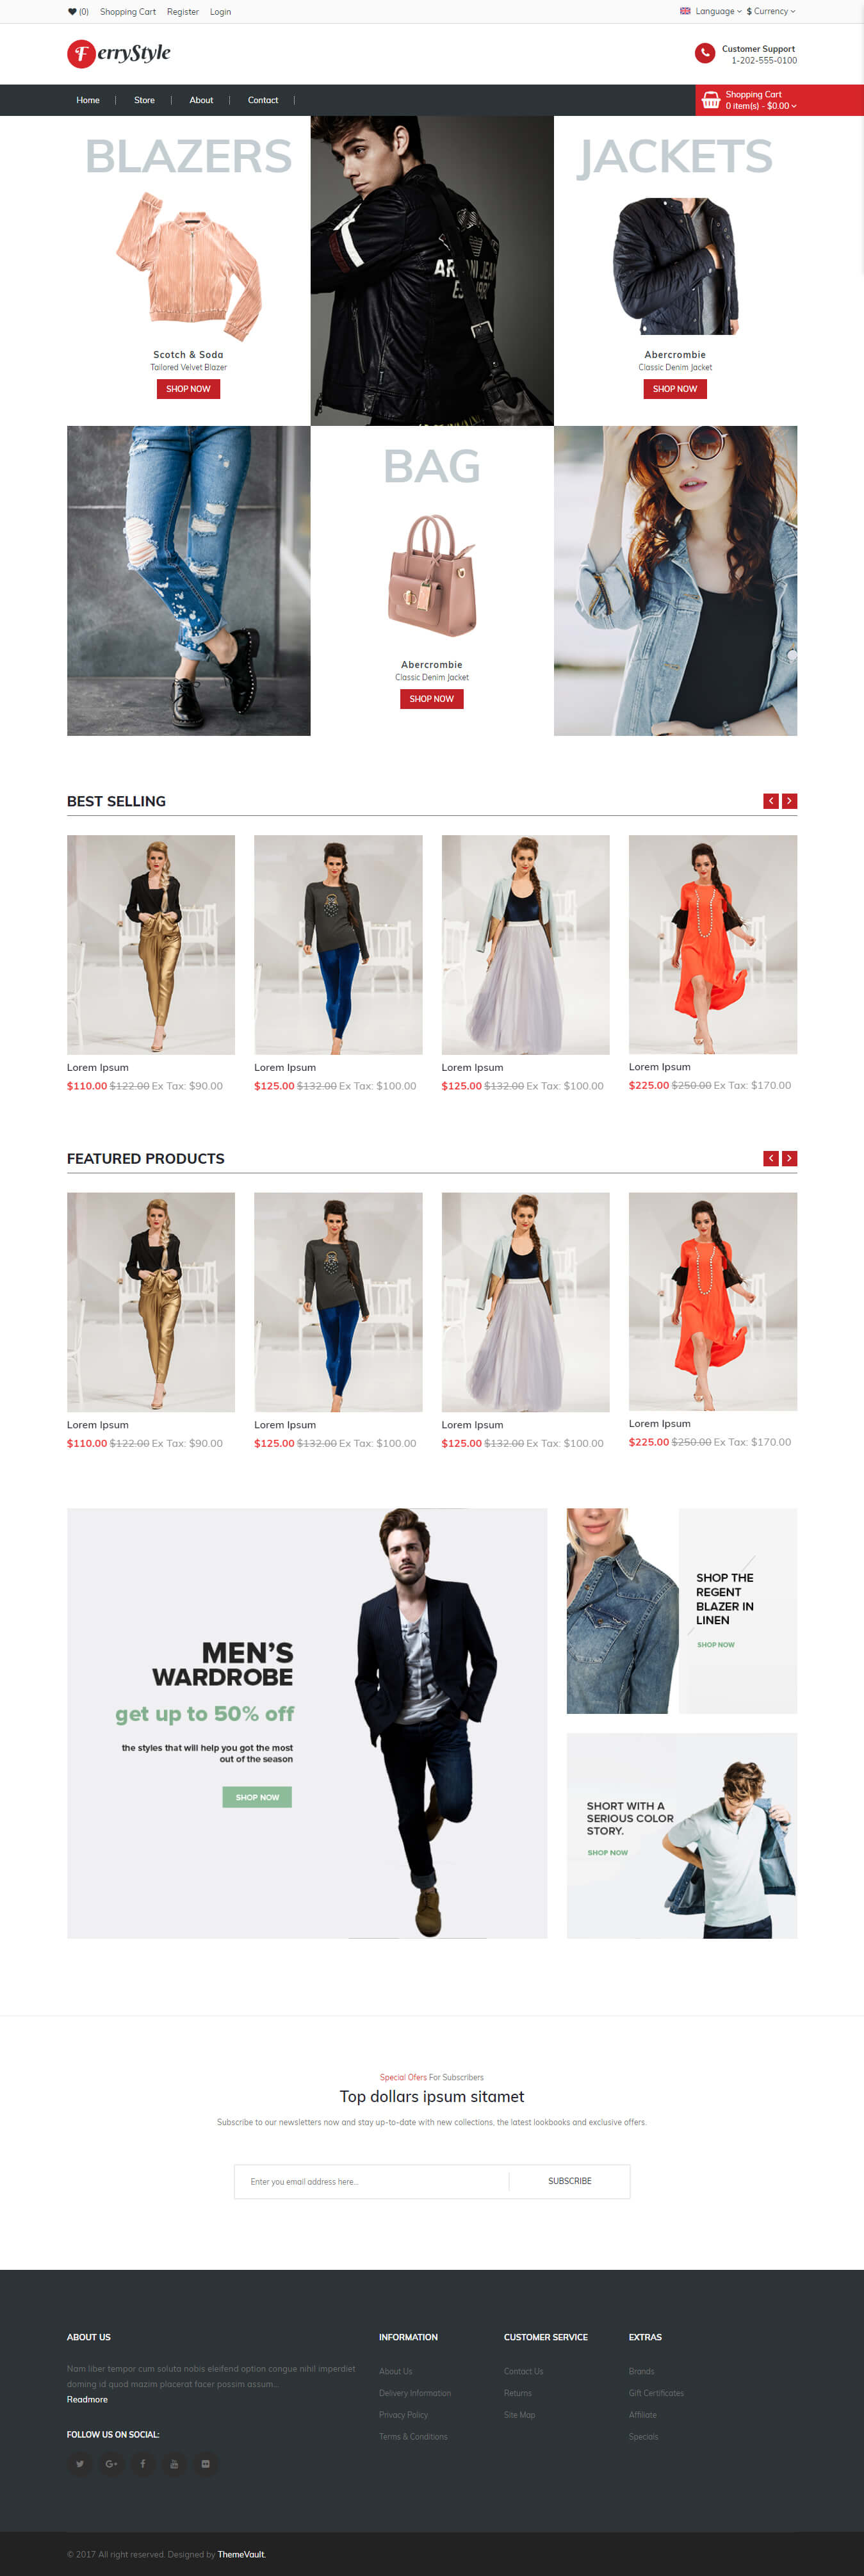 FerryStyle - Online Shopping Website Design Template